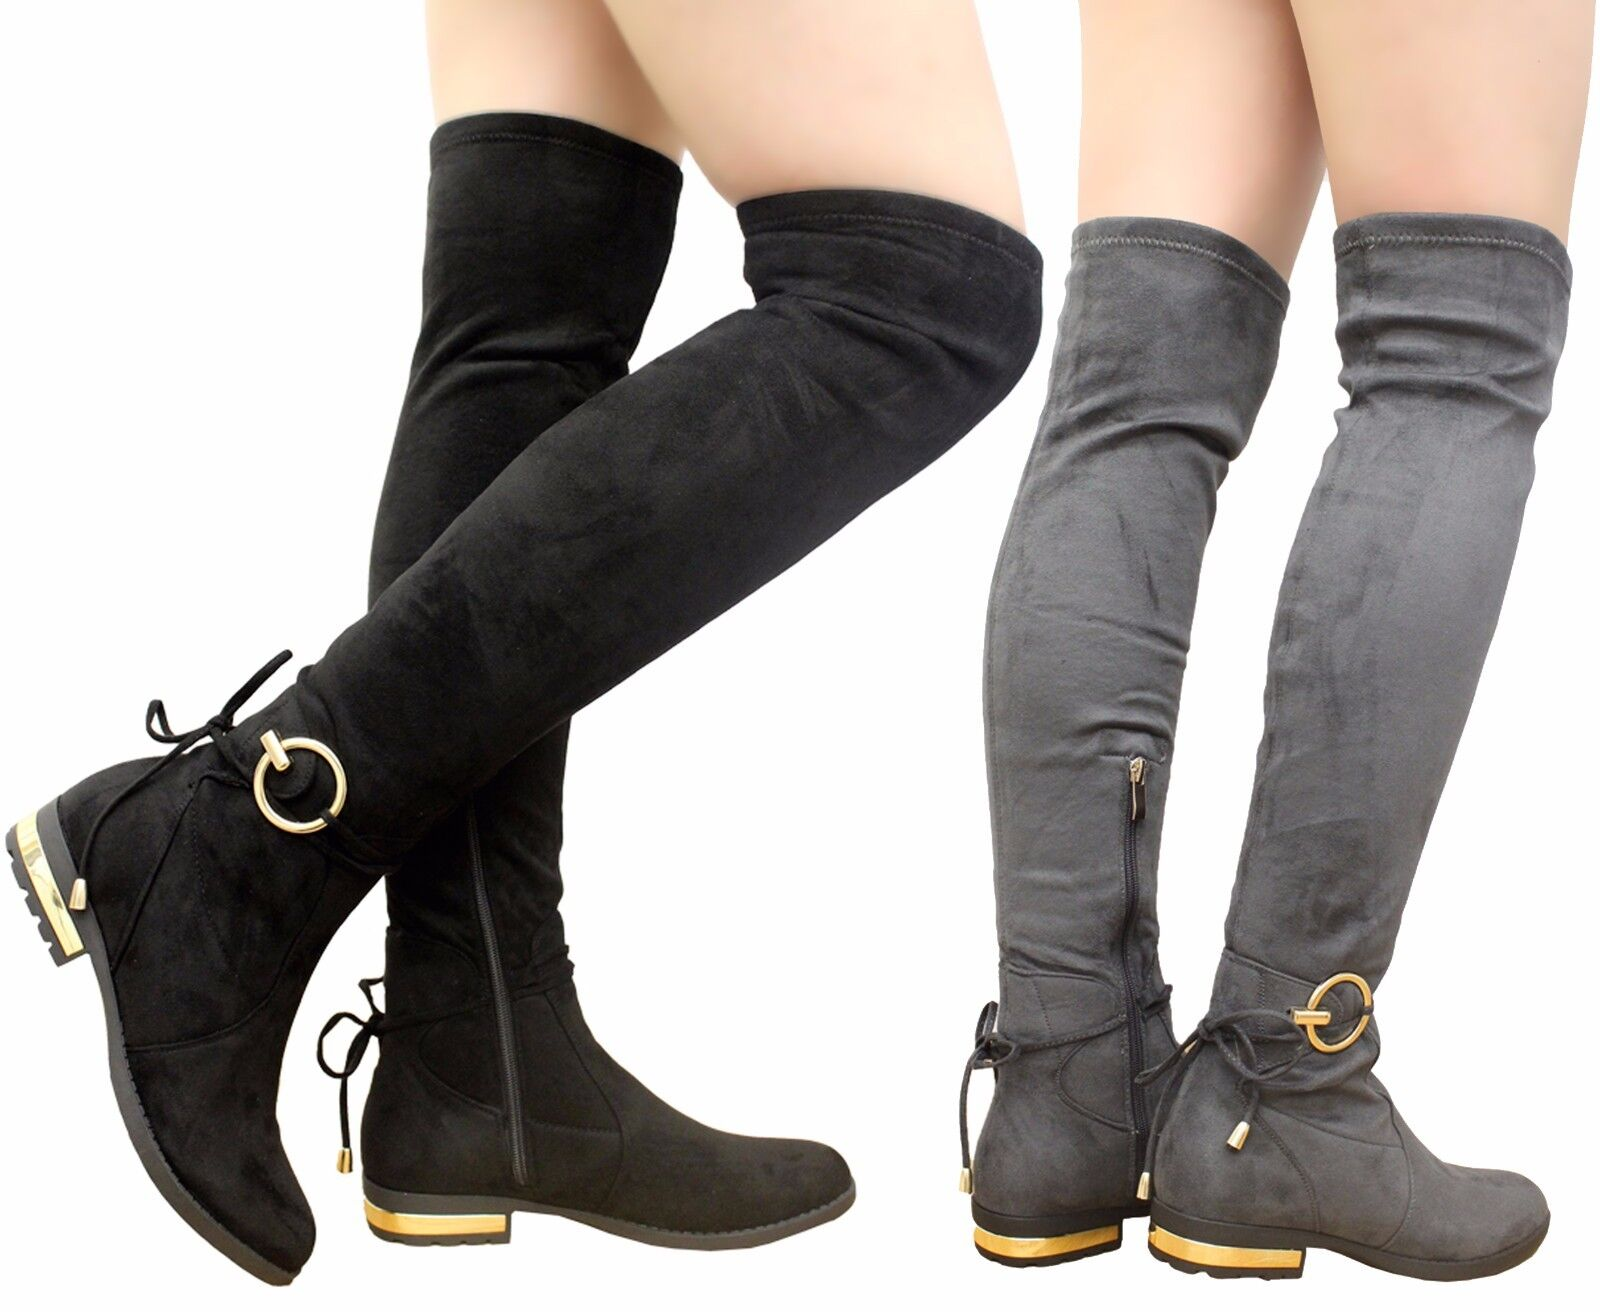 Ladies Womens Thigh High Over The Knee Boots Tie Back Buckle Low Heel Shoes Size